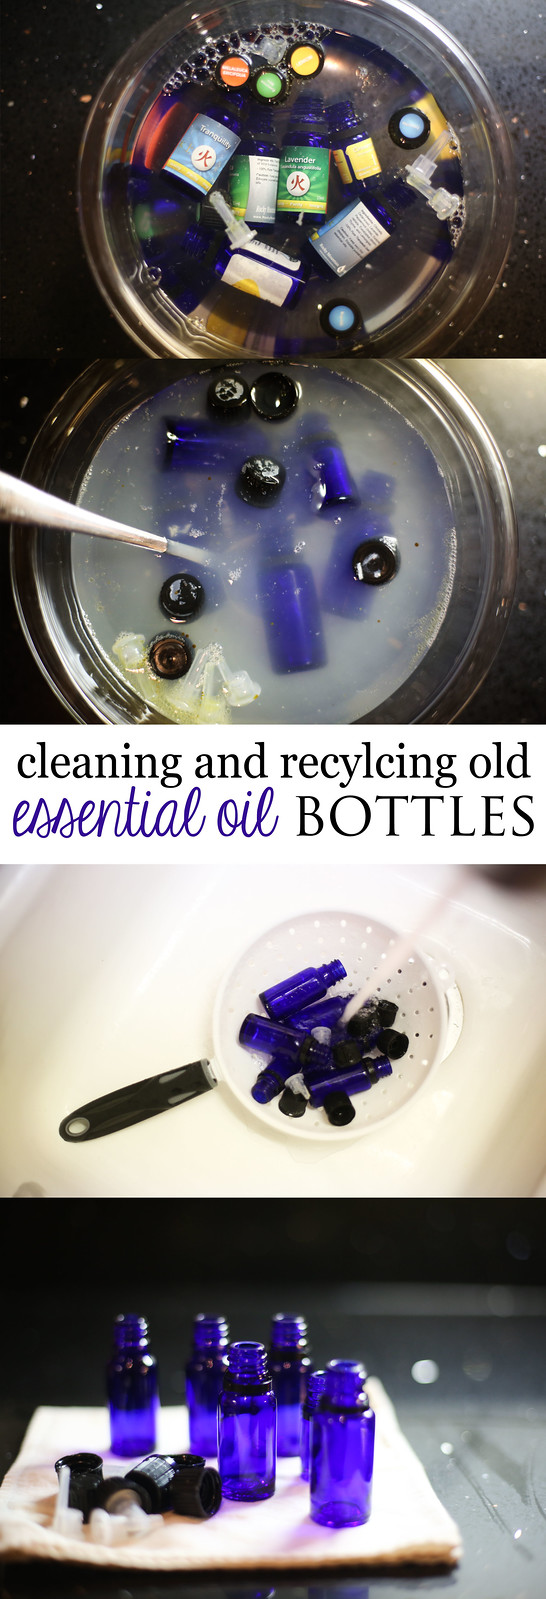 How to clean and recycle old Essential Oil Bottles, with ingredients most have at home.